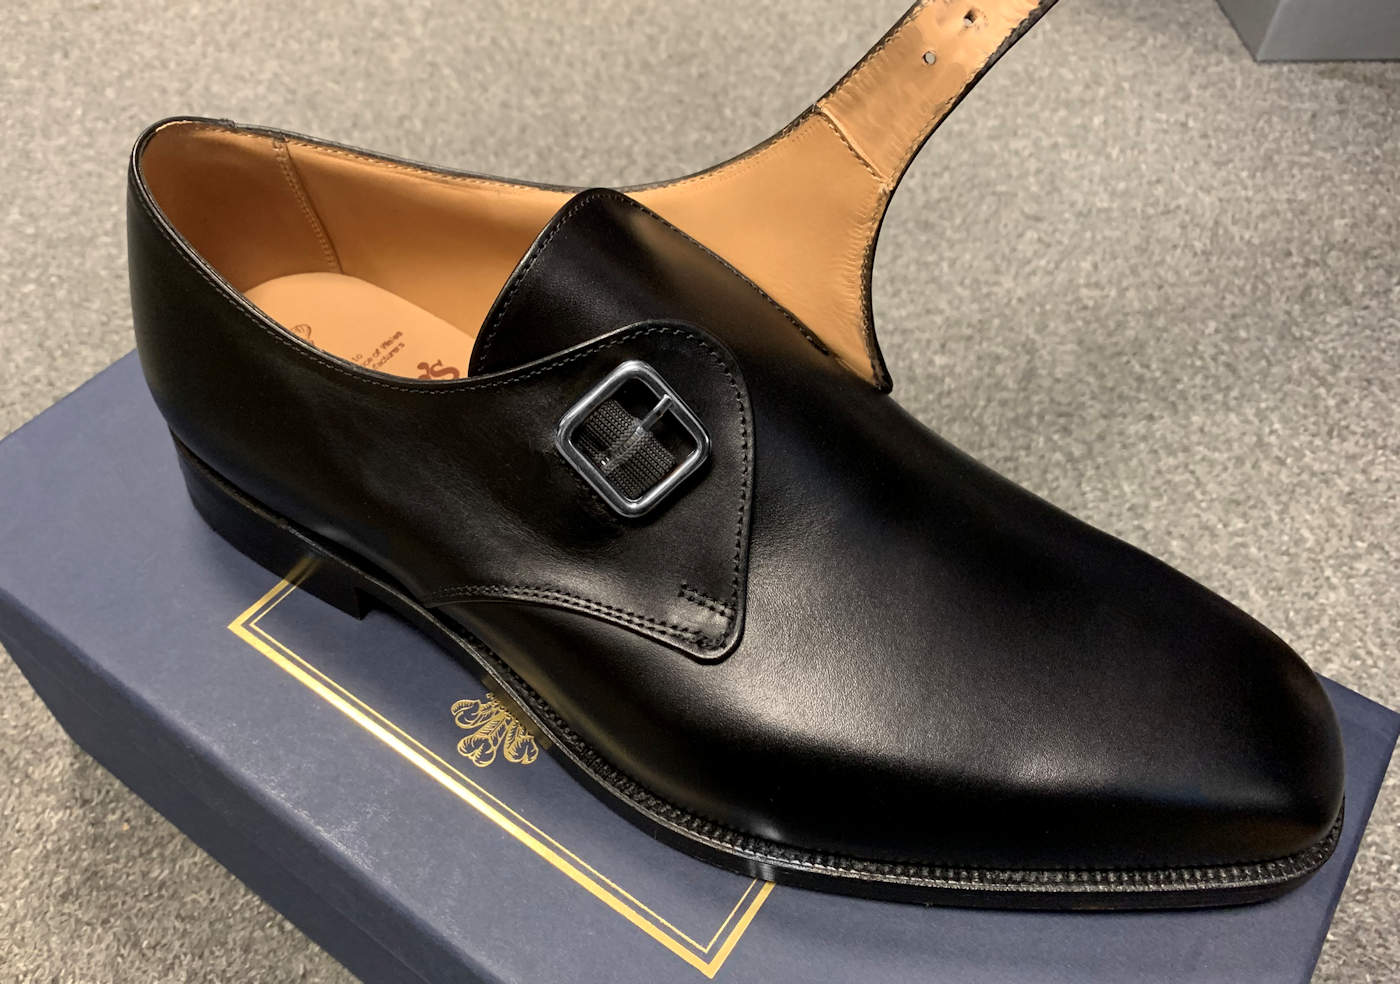 Example of a monk strap shoe opened up